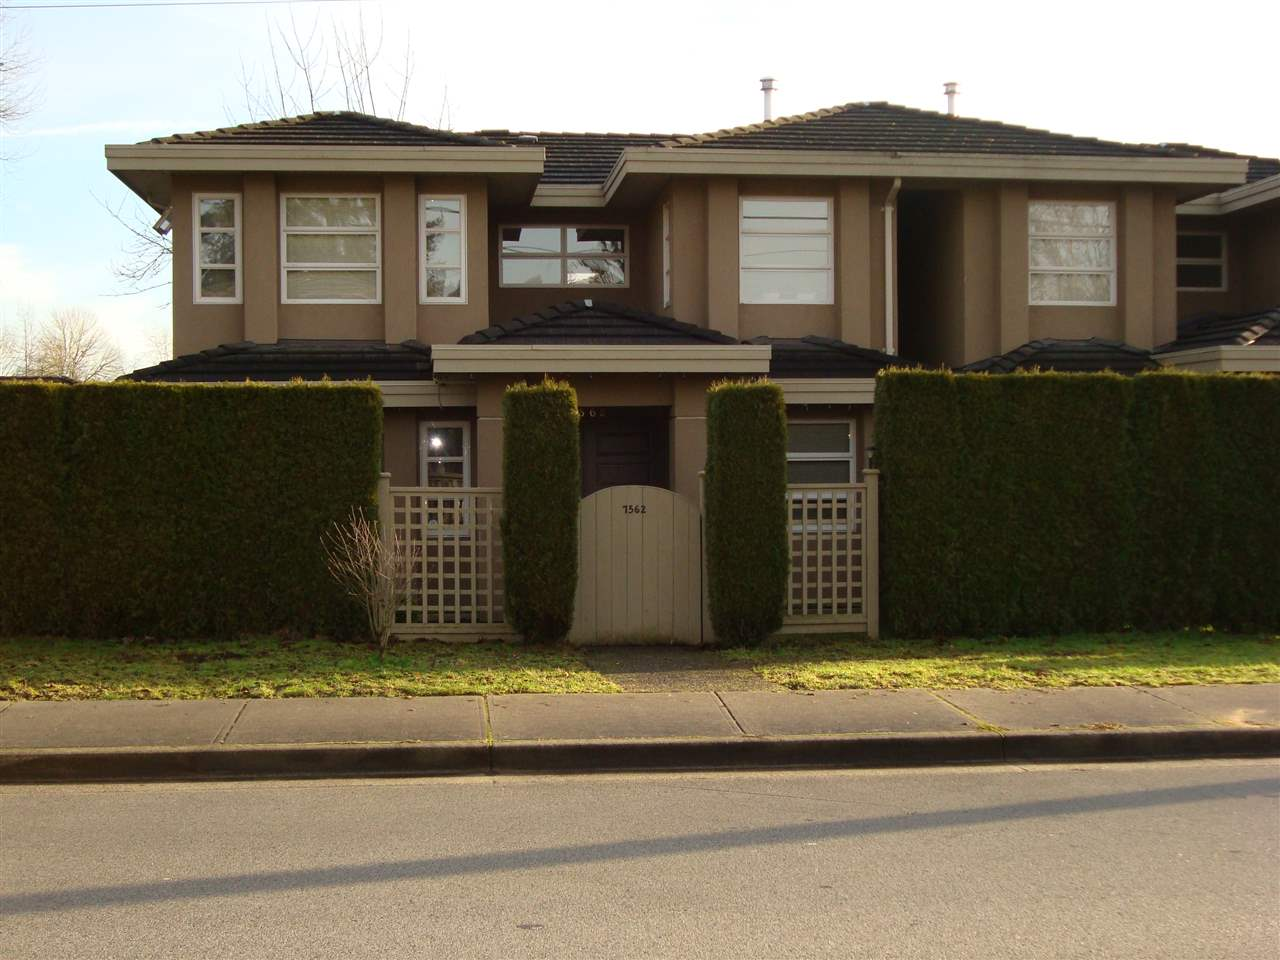 Main Photo: 7562 16TH Avenue in Burnaby: Edmonds BE House 1/2 Duplex for sale (Burnaby East)  : MLS® # R2022922